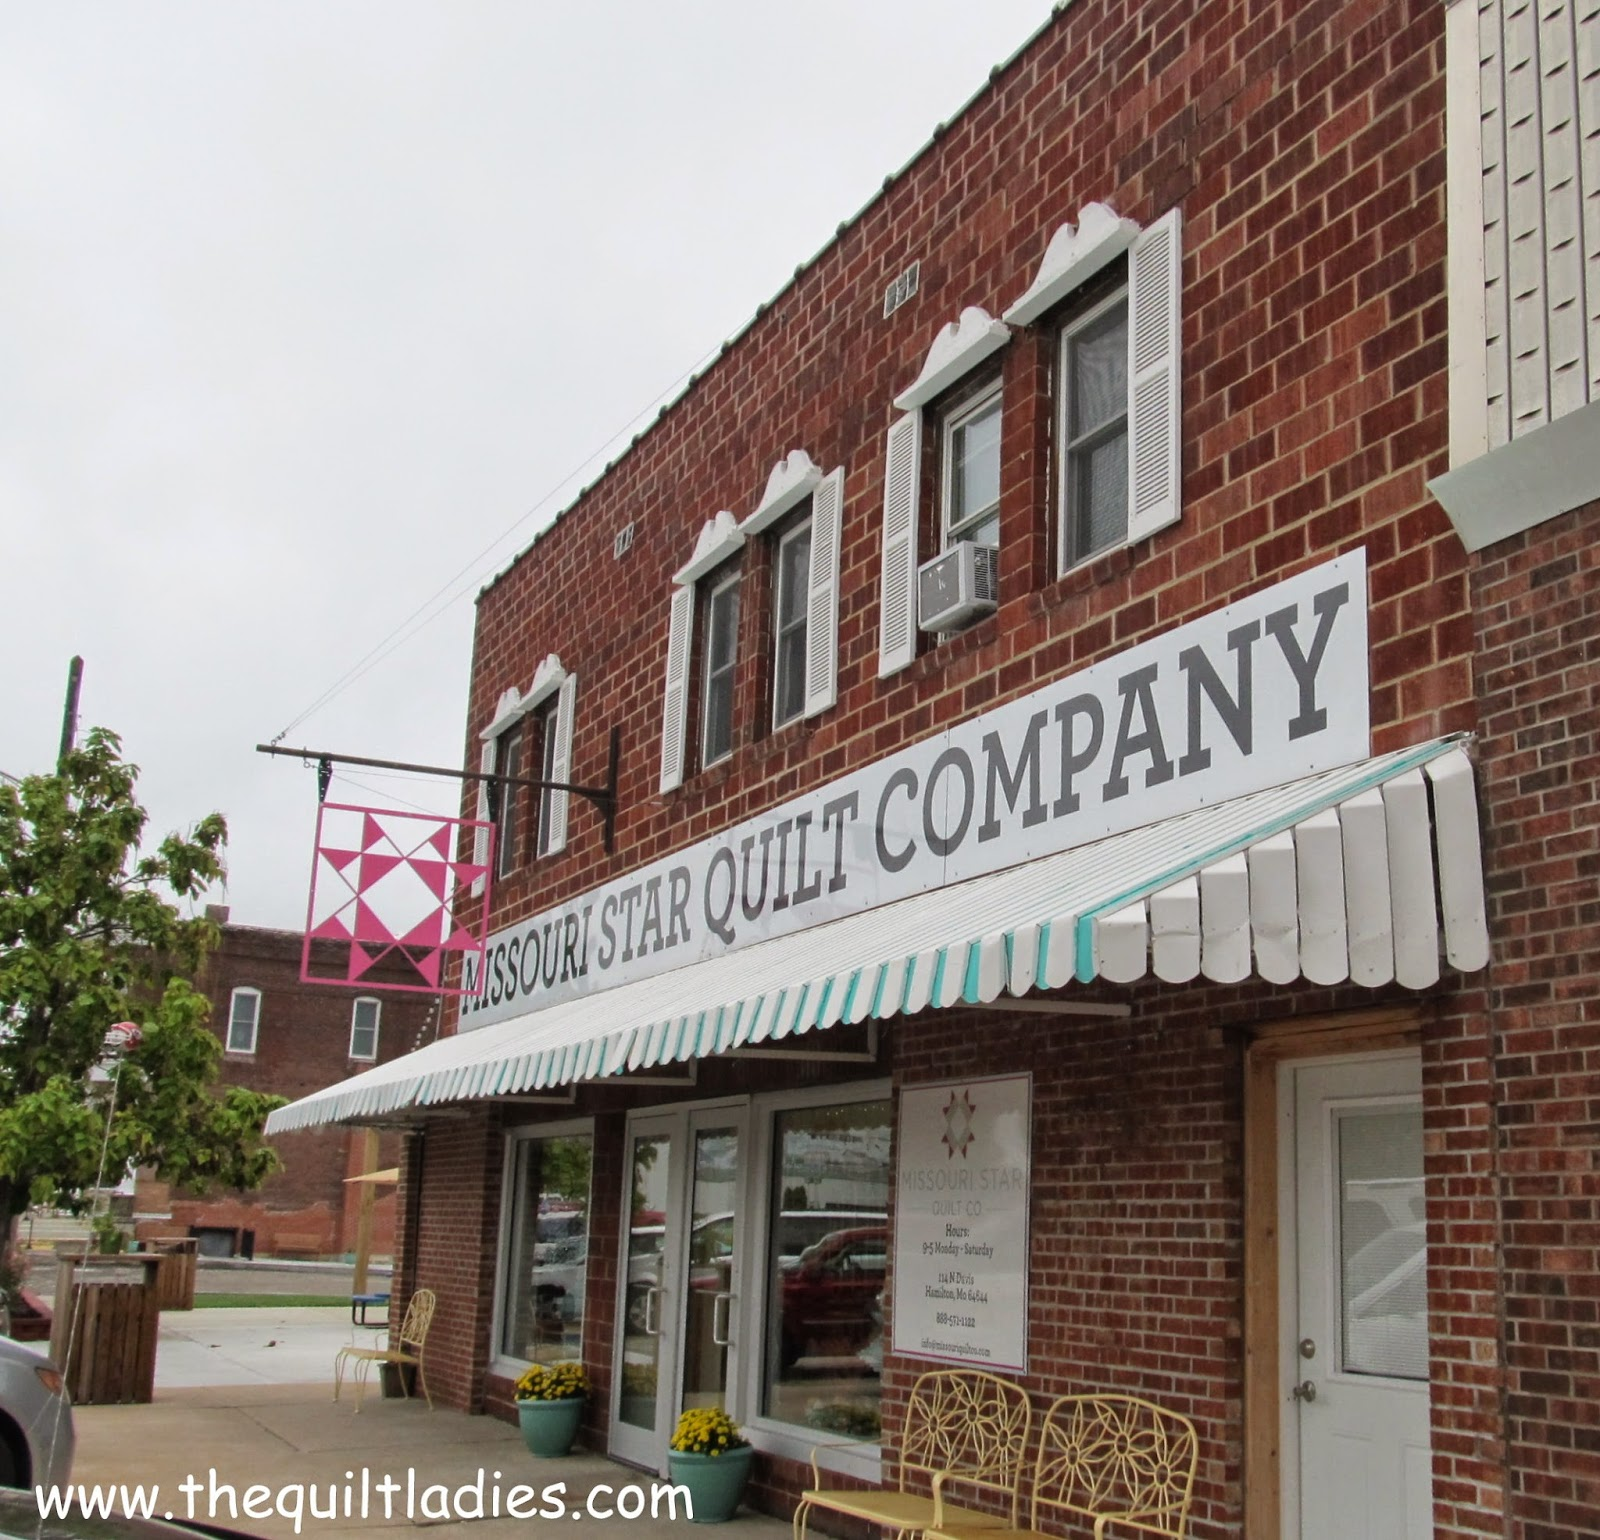 Missouri Star Quilt Company building